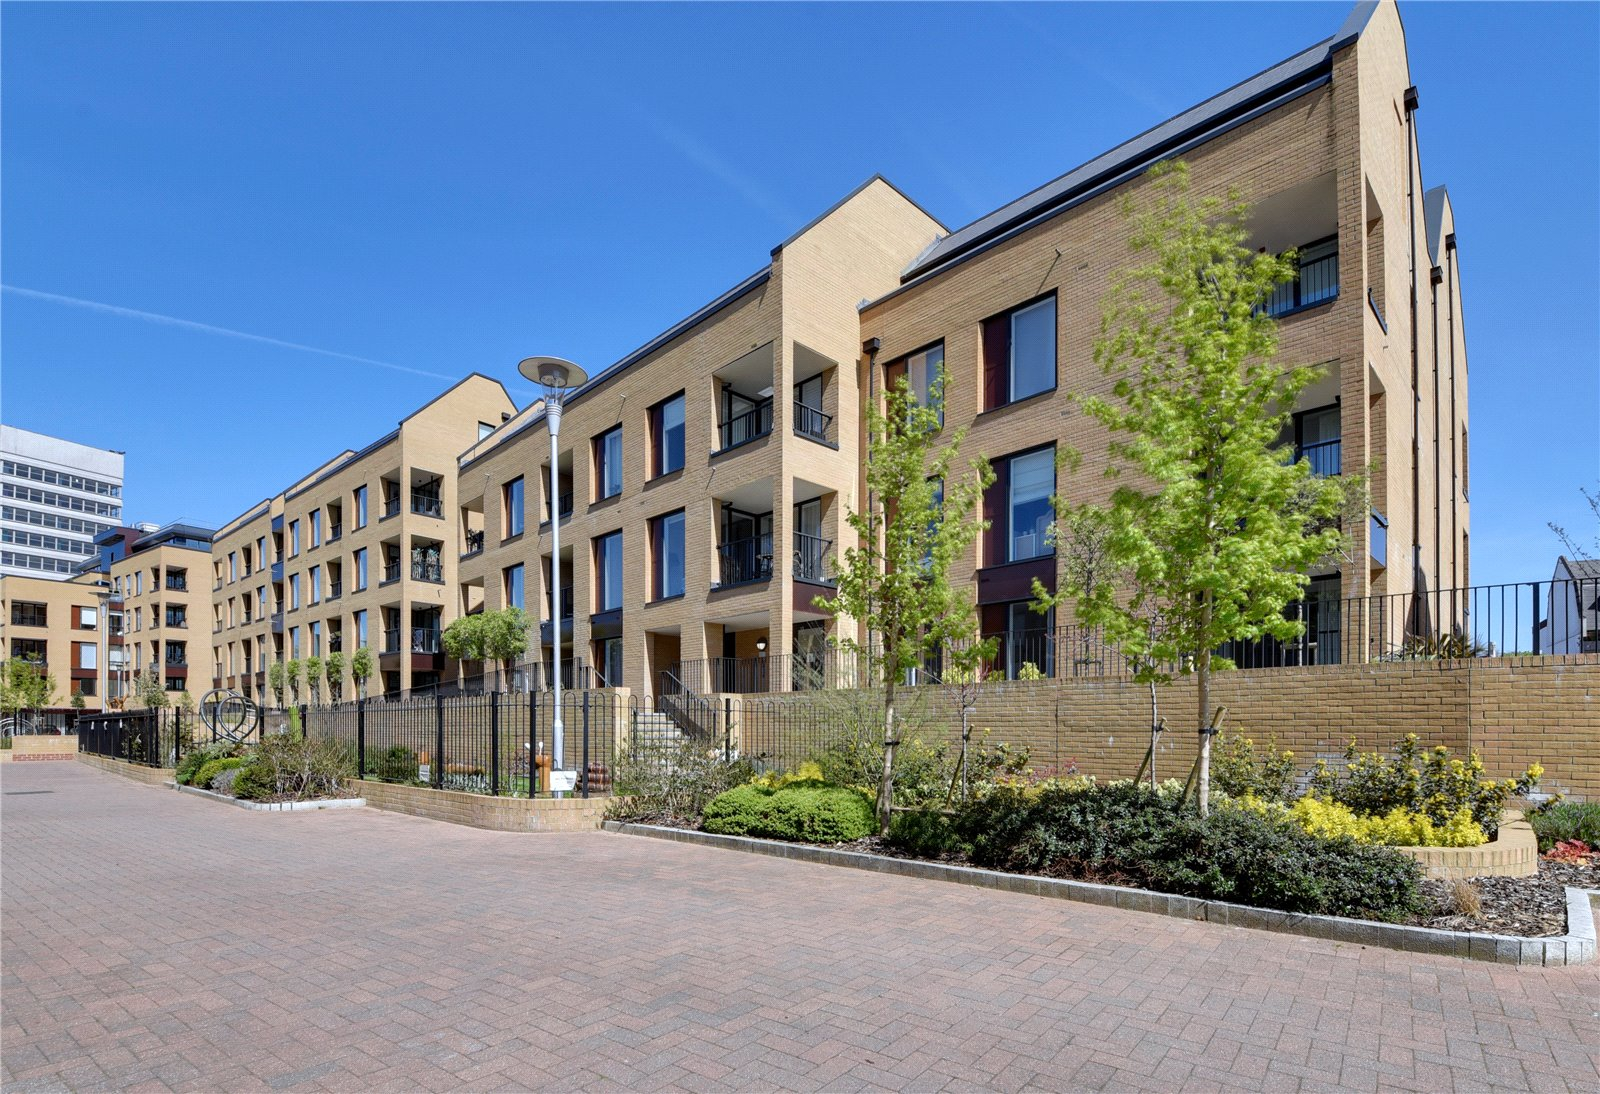 2 bed apartment for sale in Whetstone, N20 0ER, N20